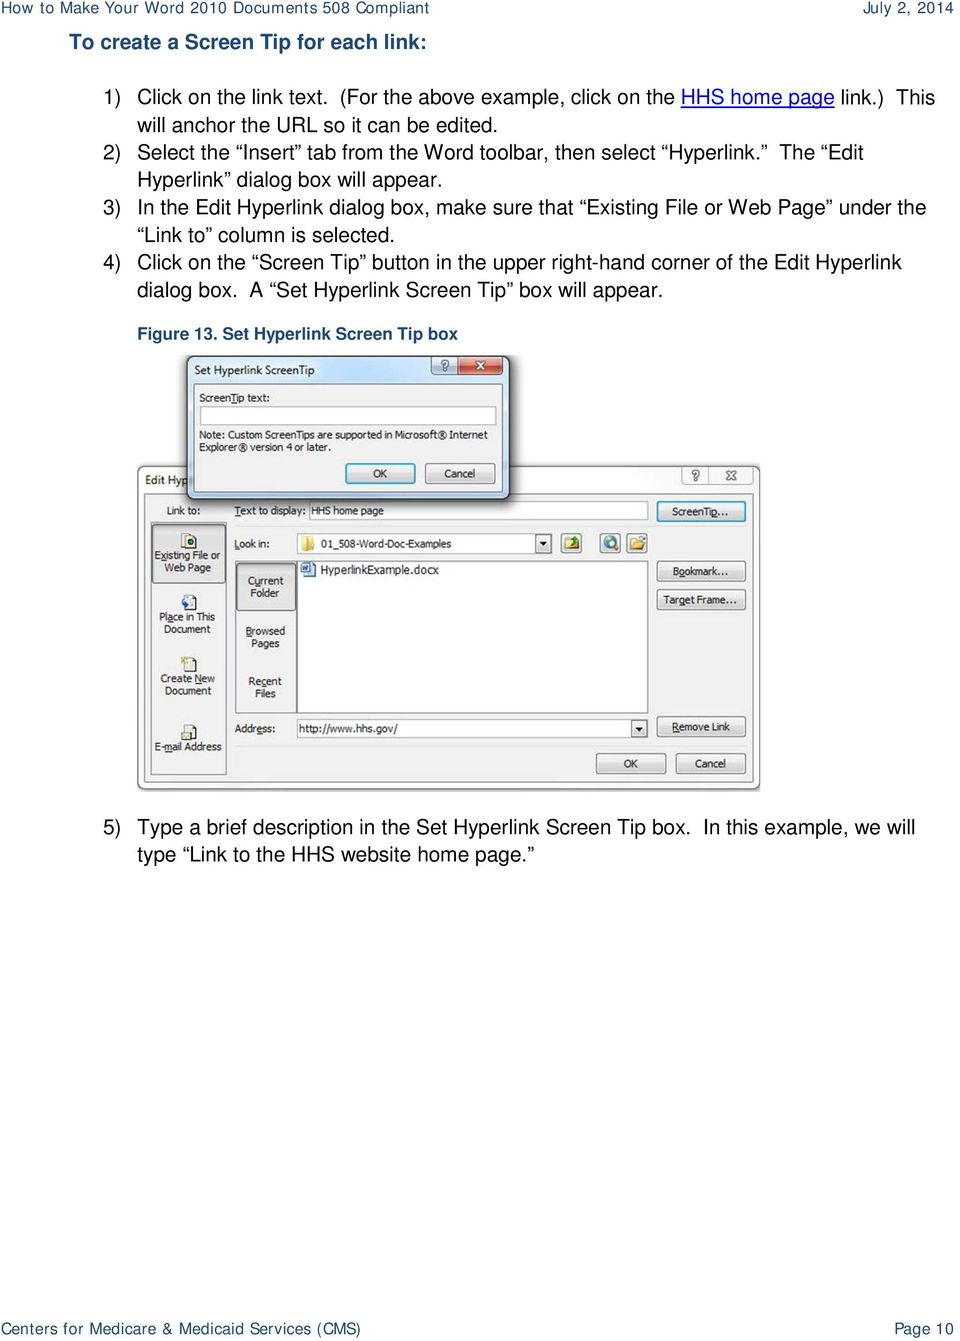 3) In the Edit Hyperlink dialog box, make sure that Existing File or Web Page under the Link to column is selected.